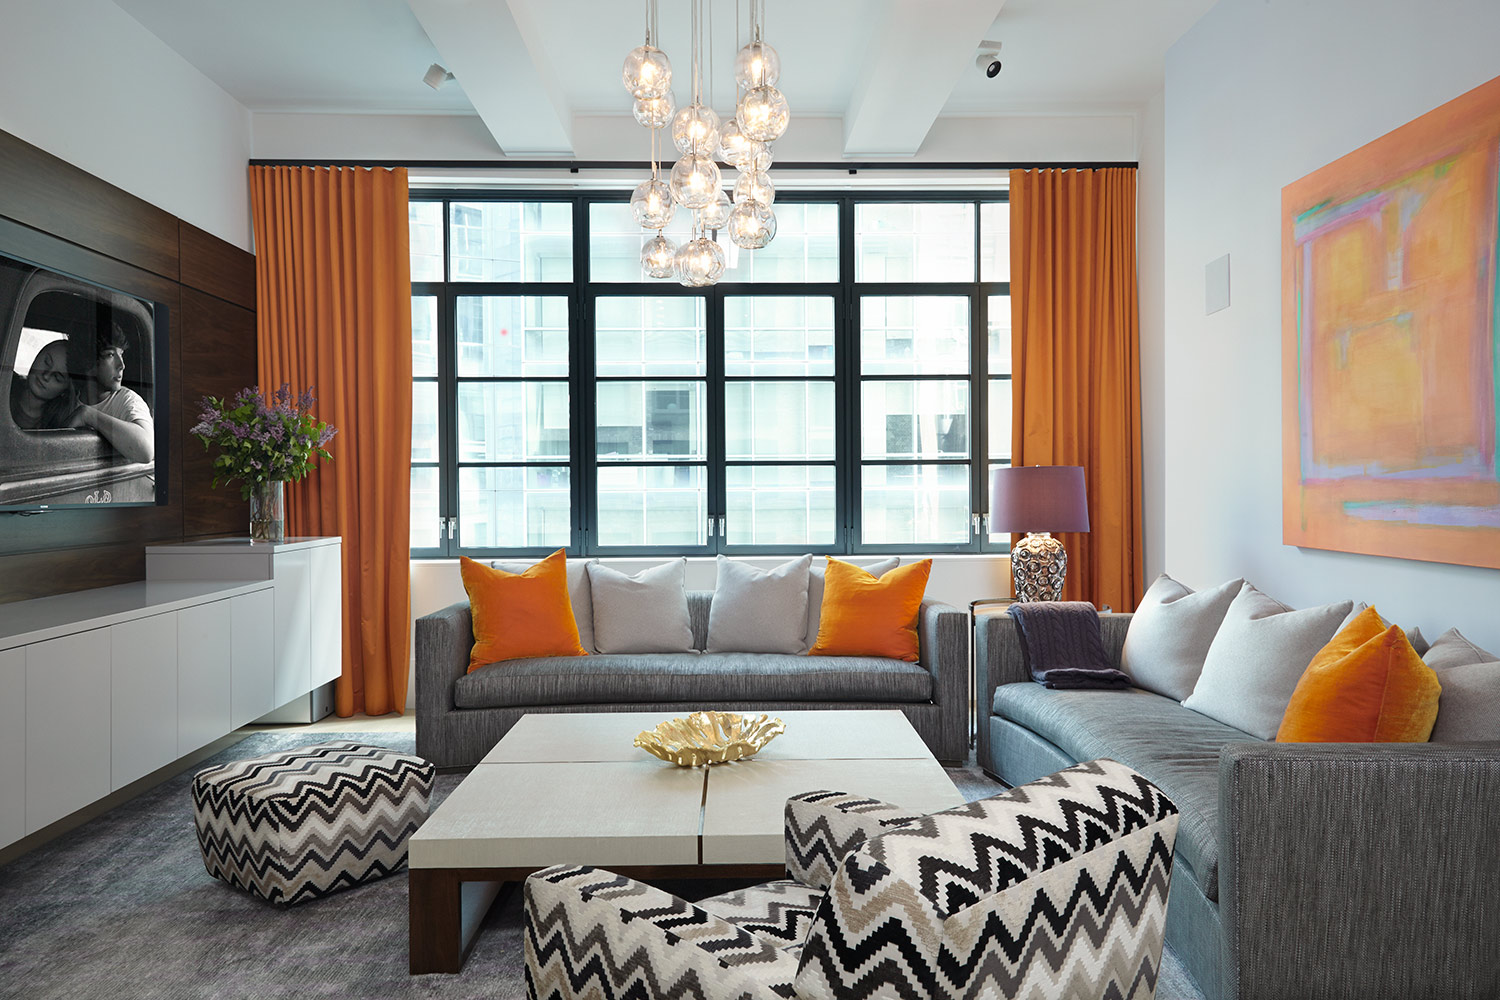 New York Interior Design By Evelyn Benatar